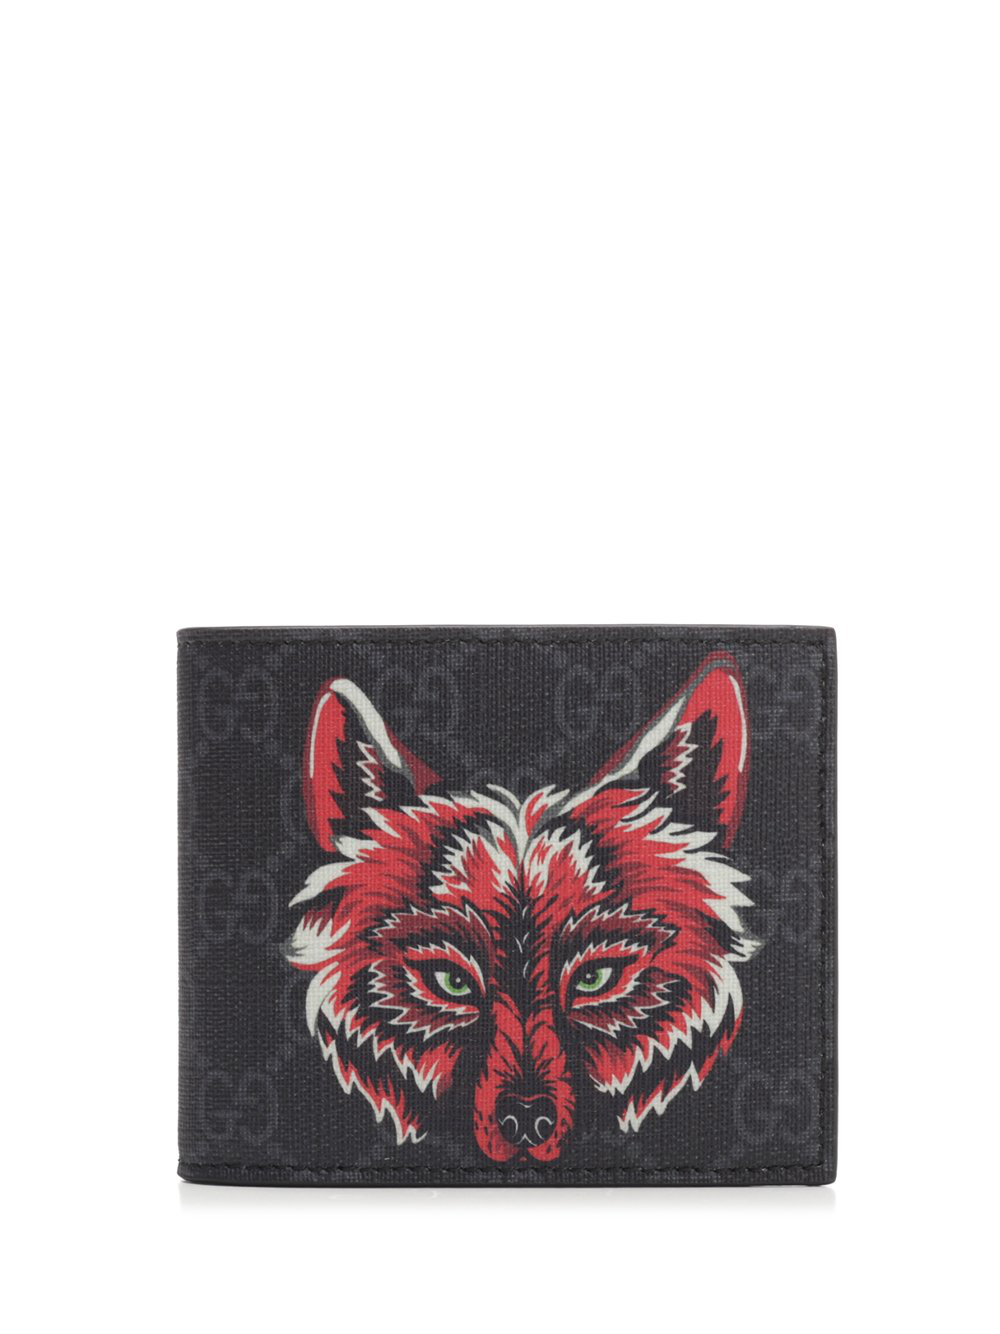 4bd424451053 Gucci Gg Supreme Wolf Wallet In Black | ModeSens